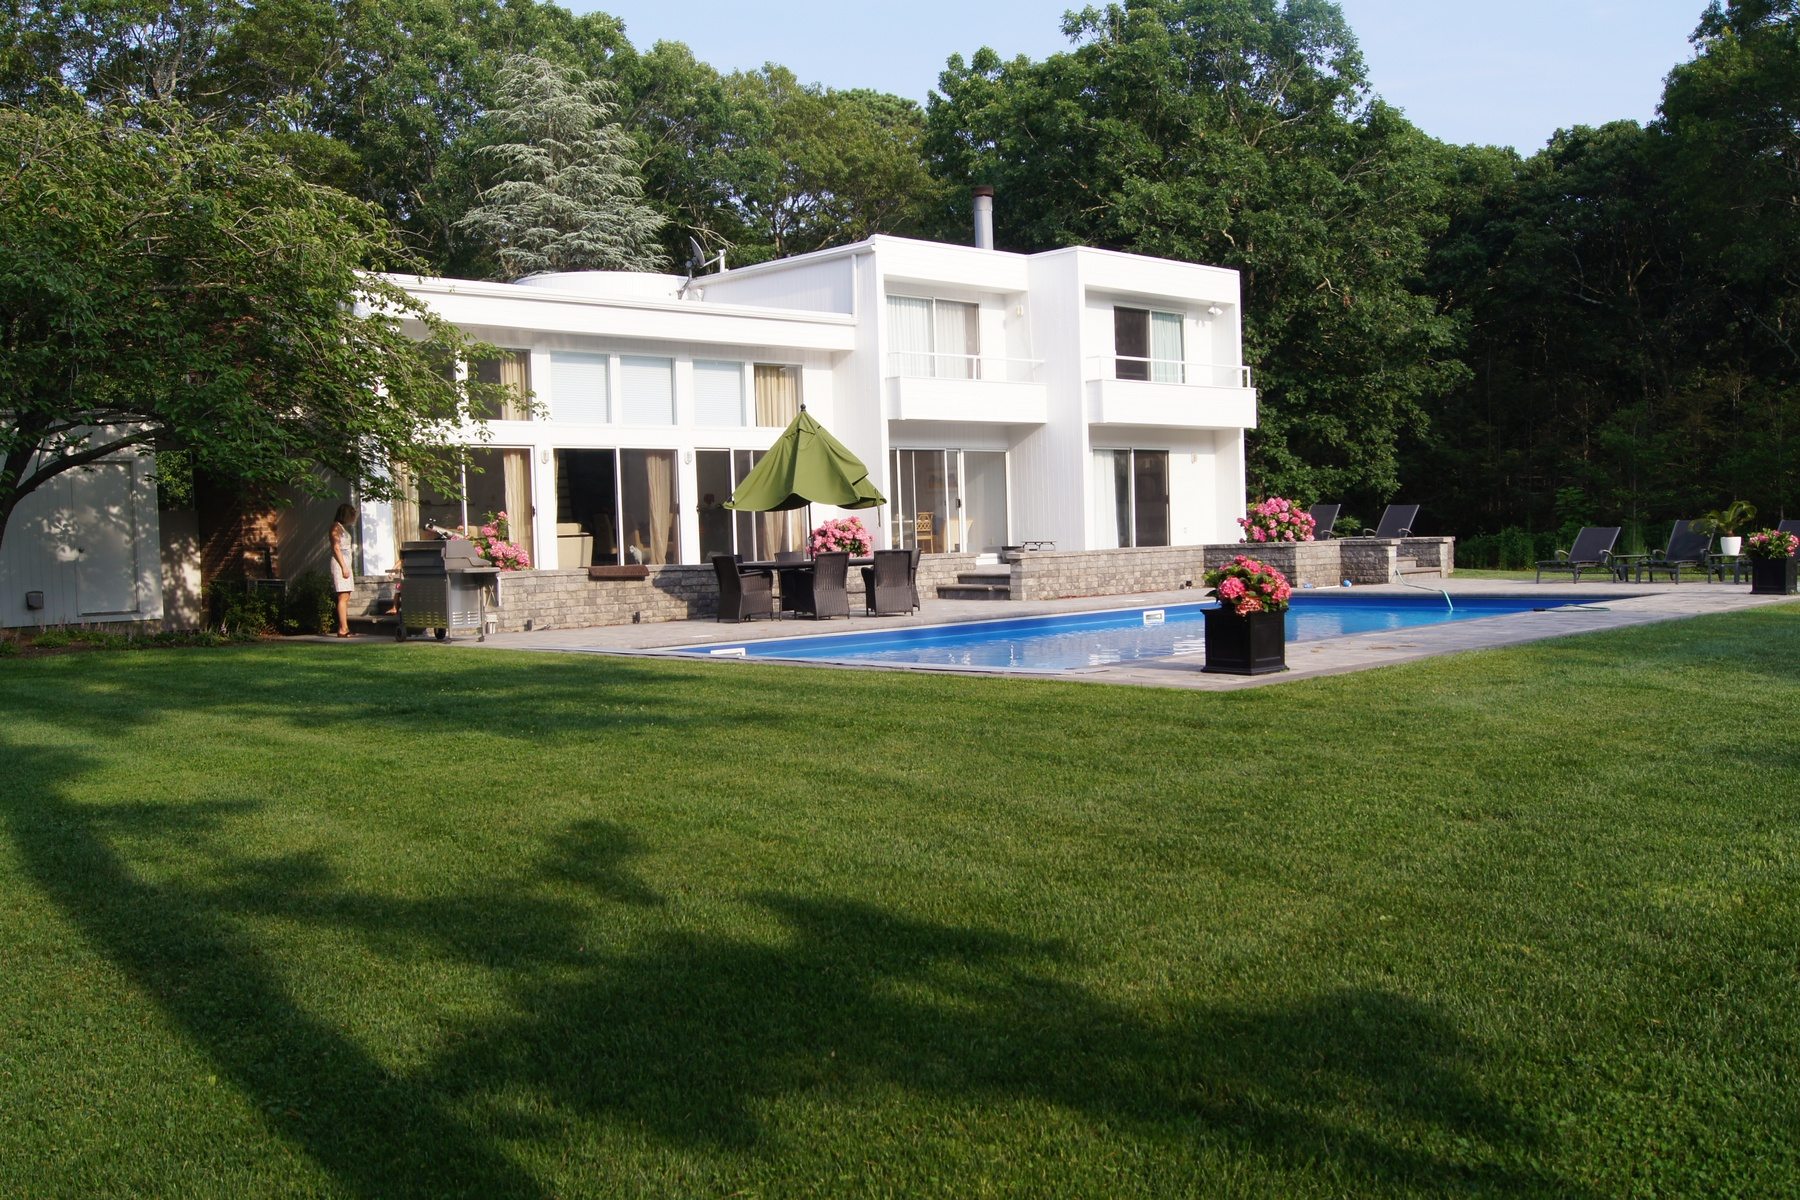 Tek Ailelik Ev için Satış at Great Contemporary with Pool 10 Fox Hollow Drive East Quogue, New York, 11942 Amerika Birleşik Devletleri